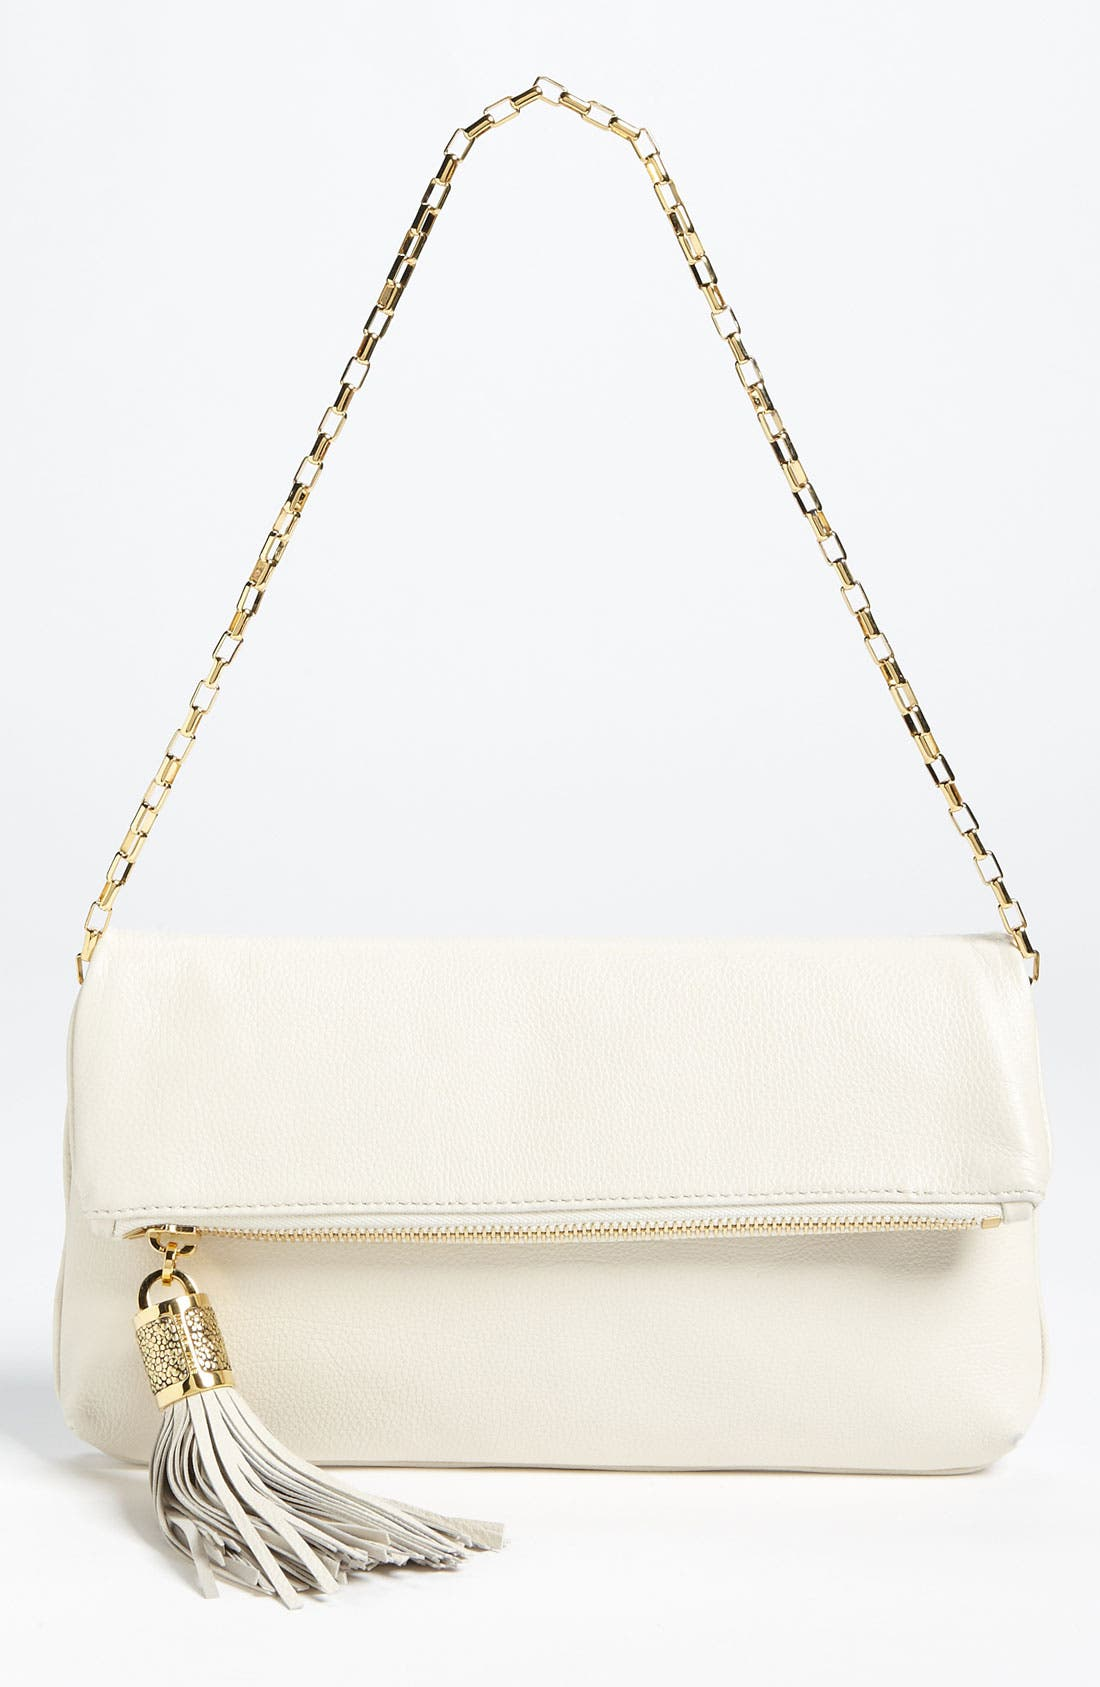 Main Image - Michael Kors 'Tonne' Leather Shoulder Bag